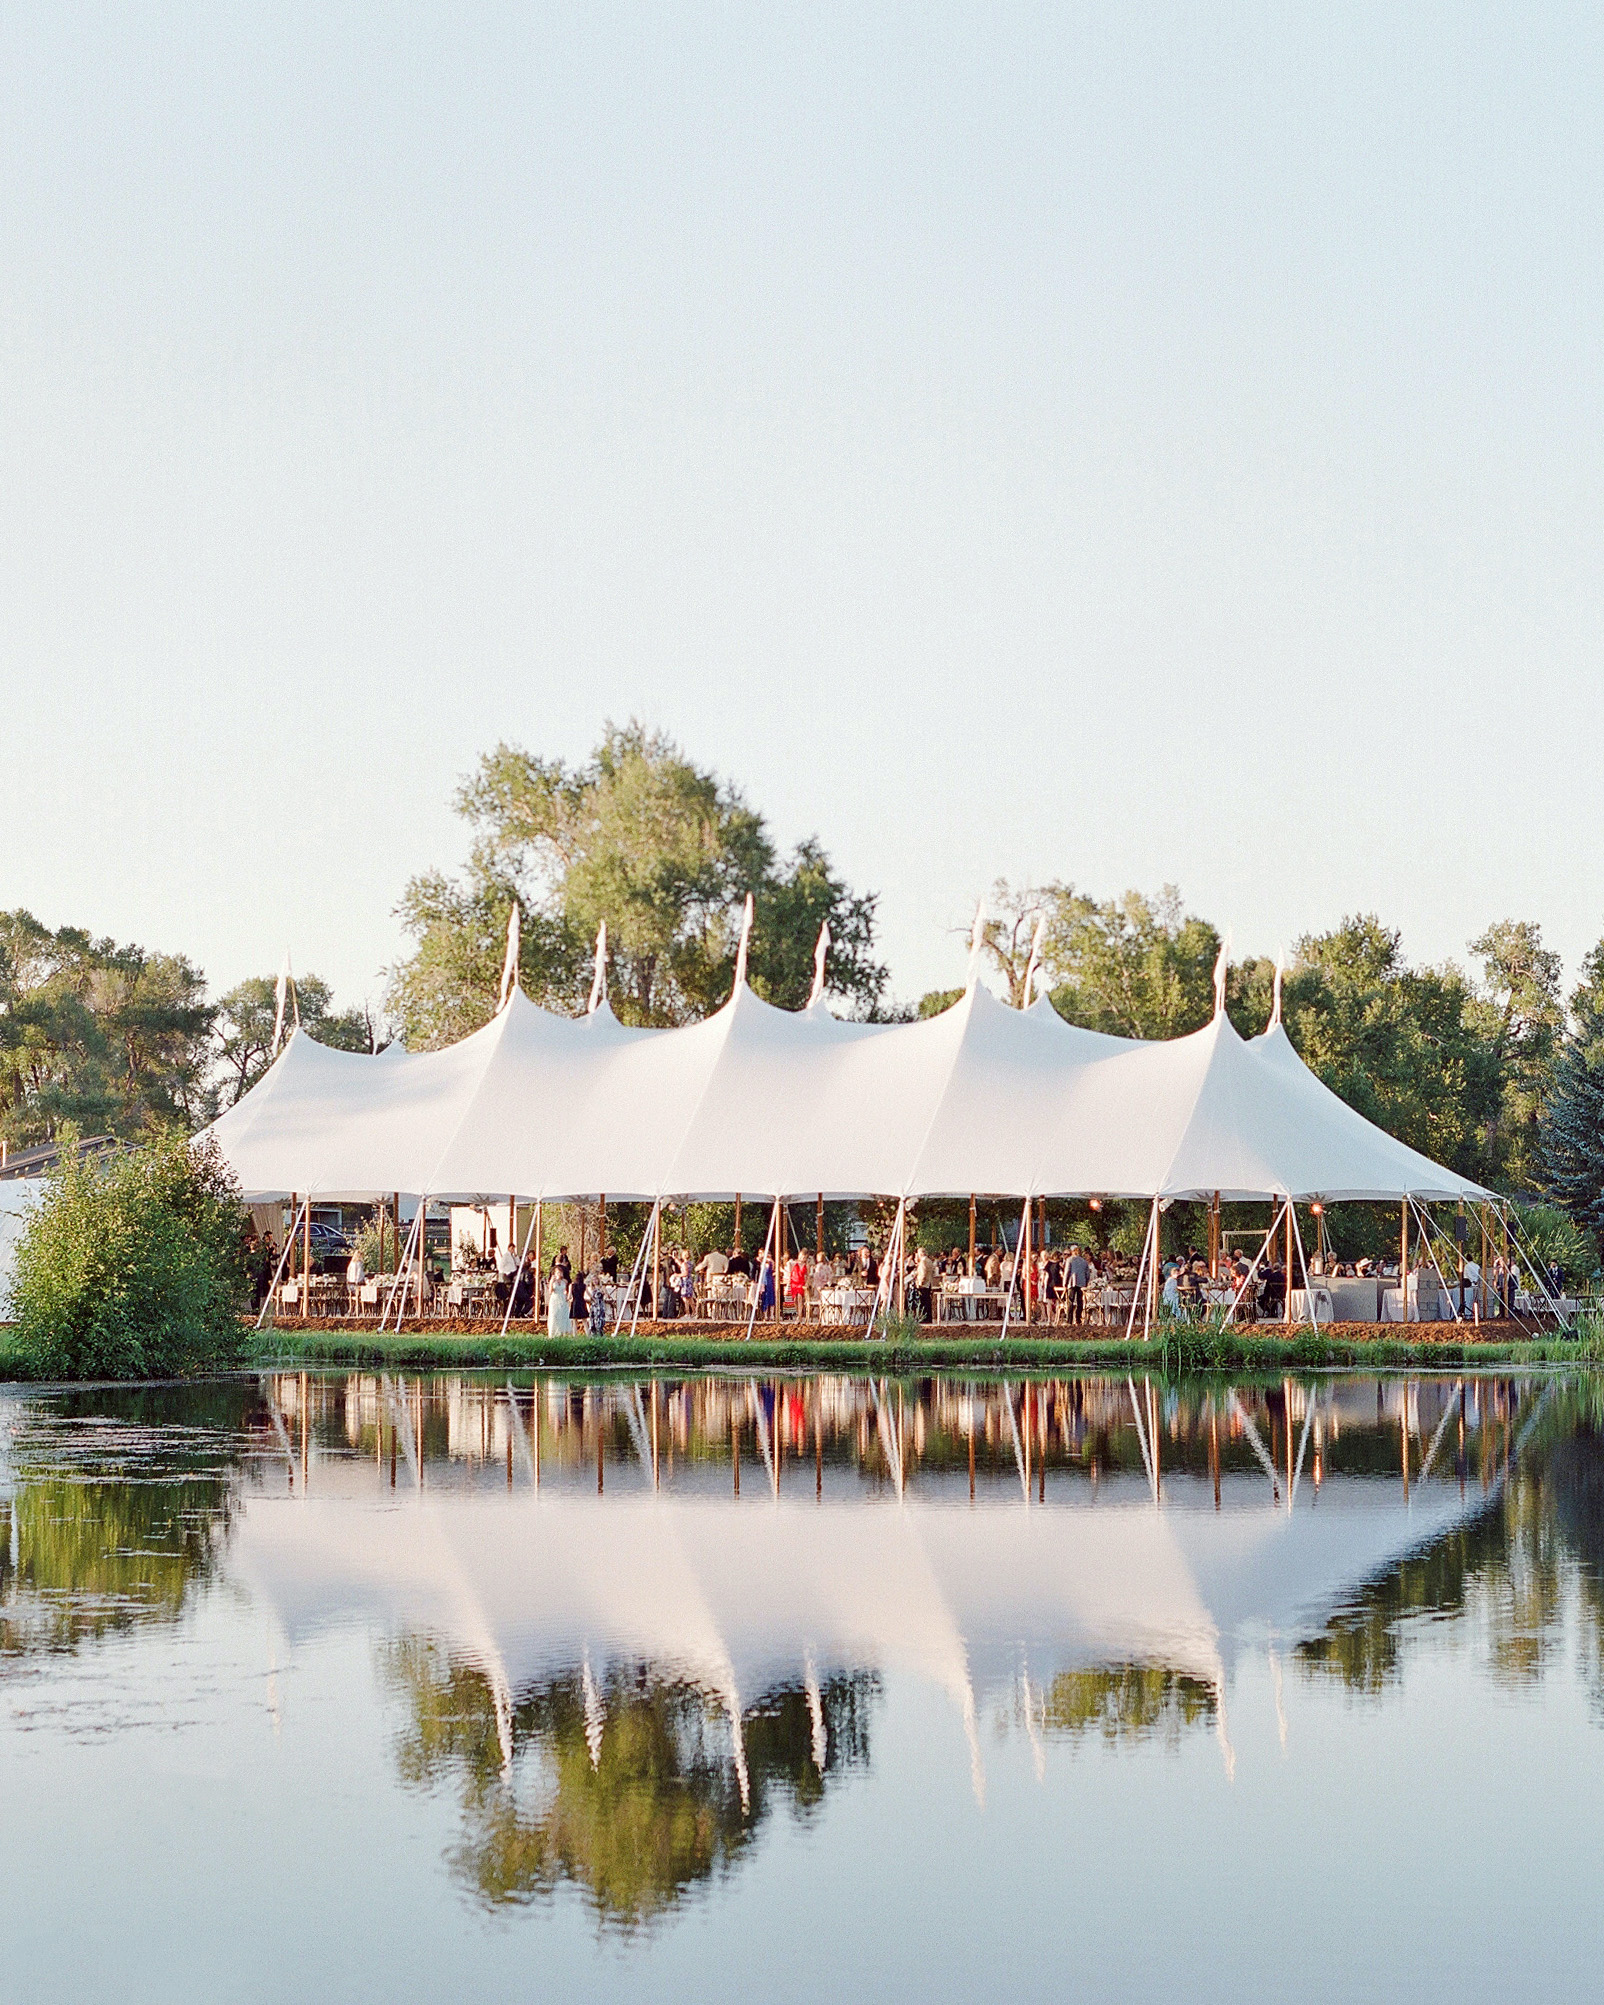 4 Key Factors to Consider Before Planning a Tented Wedding